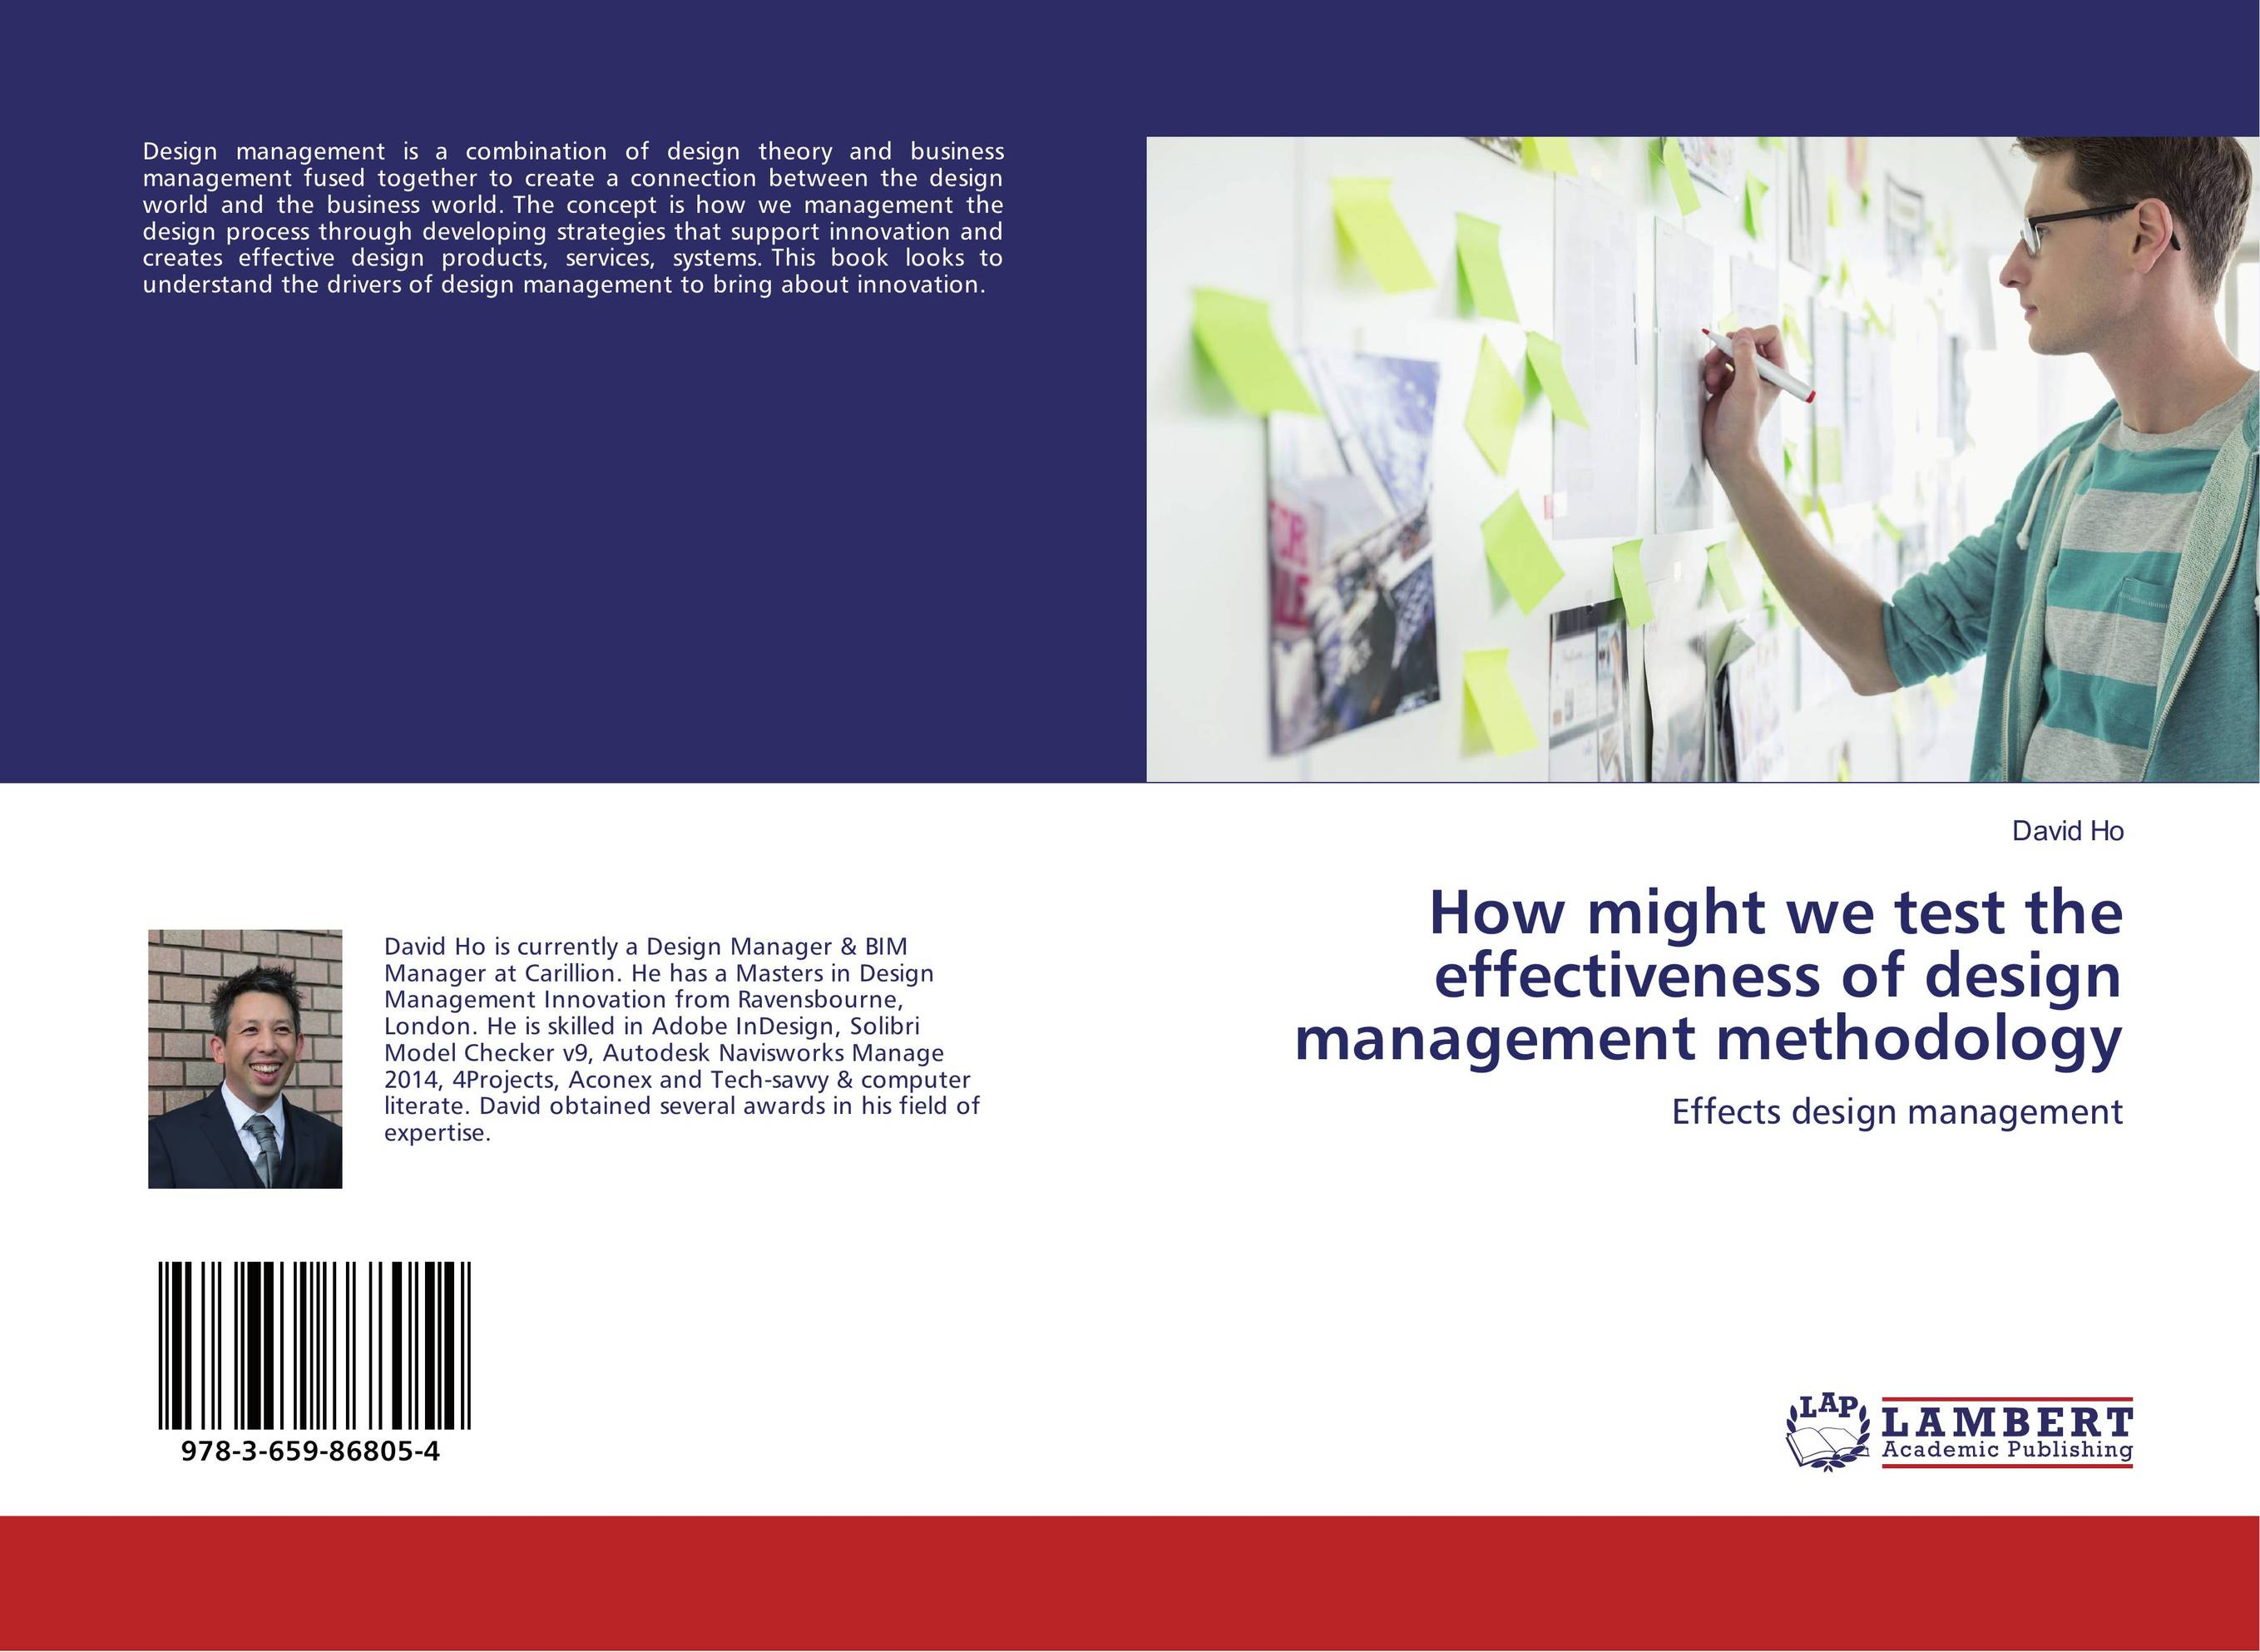 How might we test the effectiveness of design management methodology michel chevalier luxury retail management how the world s top brands provide quality product and service support